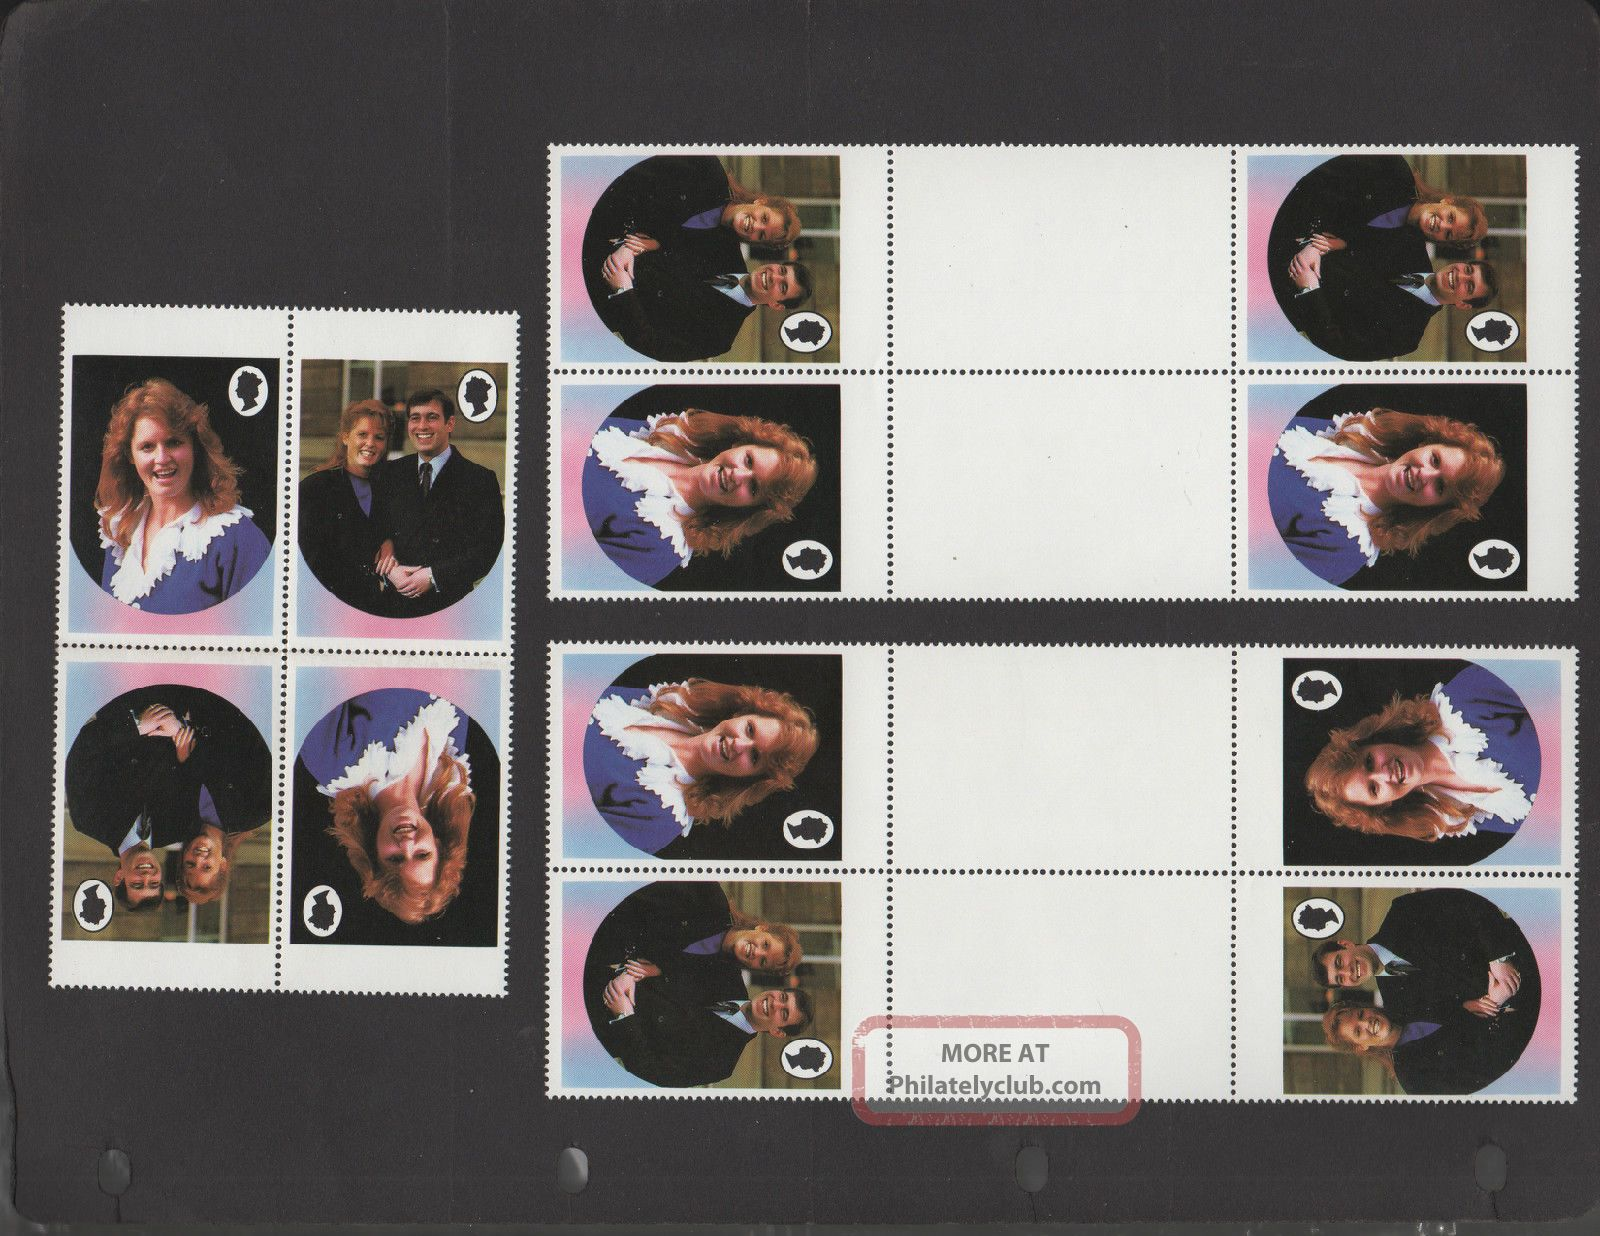 6x Virgin Islands 1986 Royal Wedding - Error - Gutters - No Value - Tete - Beche Topical Stamps photo